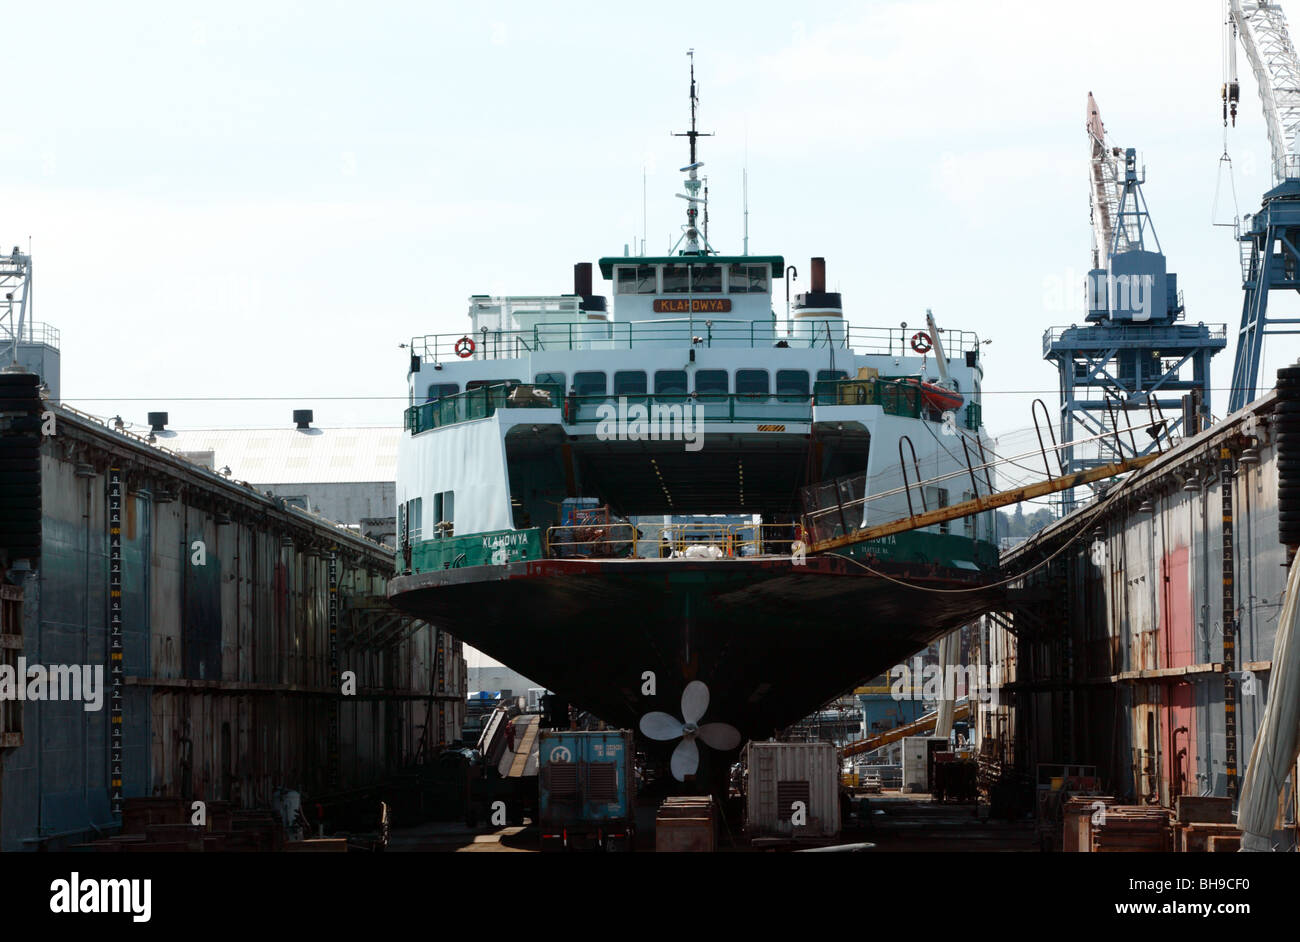 The MV Klahowya, an Evergreen State Class ferry, in a floating dry dock in the Port of Seattle, undergong repairs - Stock Image